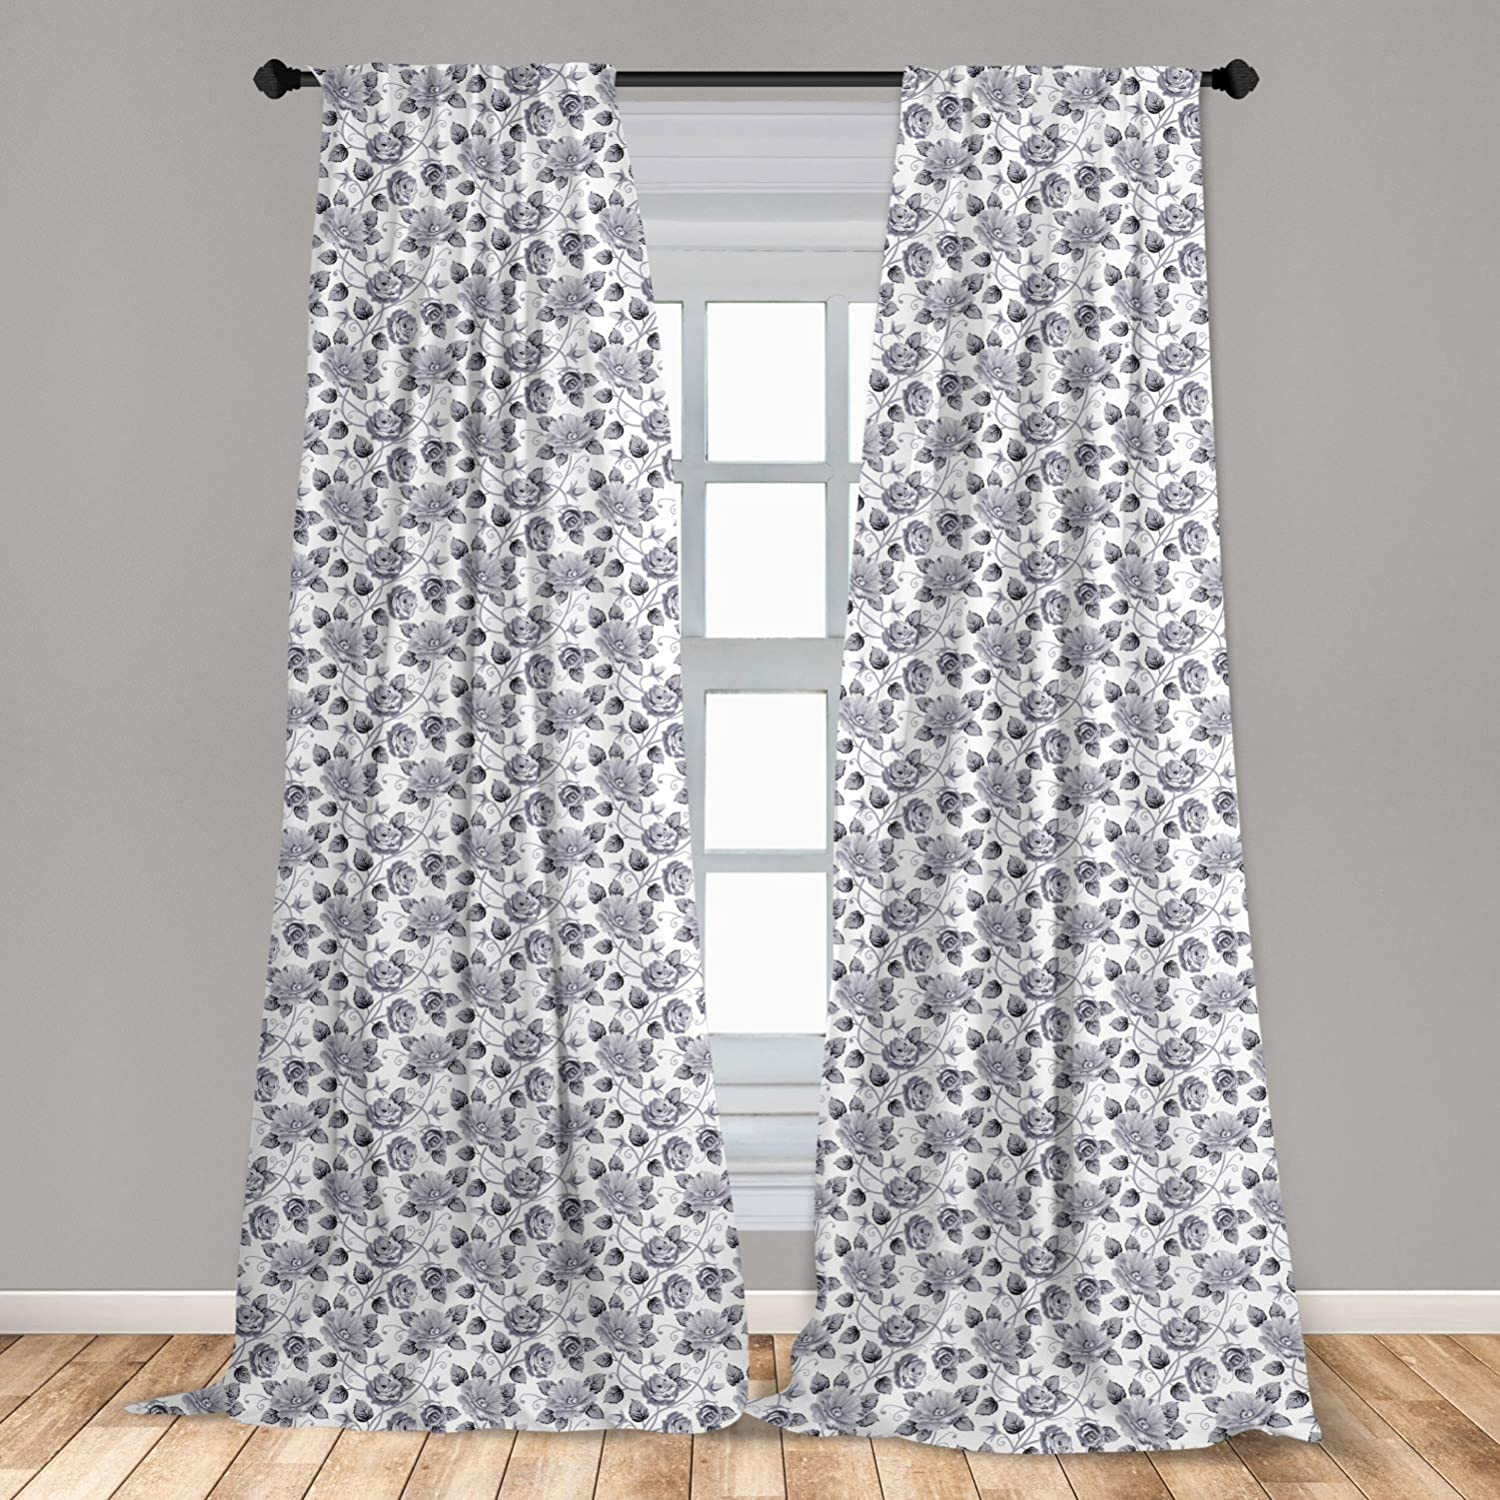 "Ambesonne Grey 2 Panel Curtain Set, Floral Patterns Victorian Inspired Roses with Dark Flowers in Monochrome Graphic Print, Lightweight Window Treatment Living Room Bedroom Decor, 56"" x 84"", Dimgray"